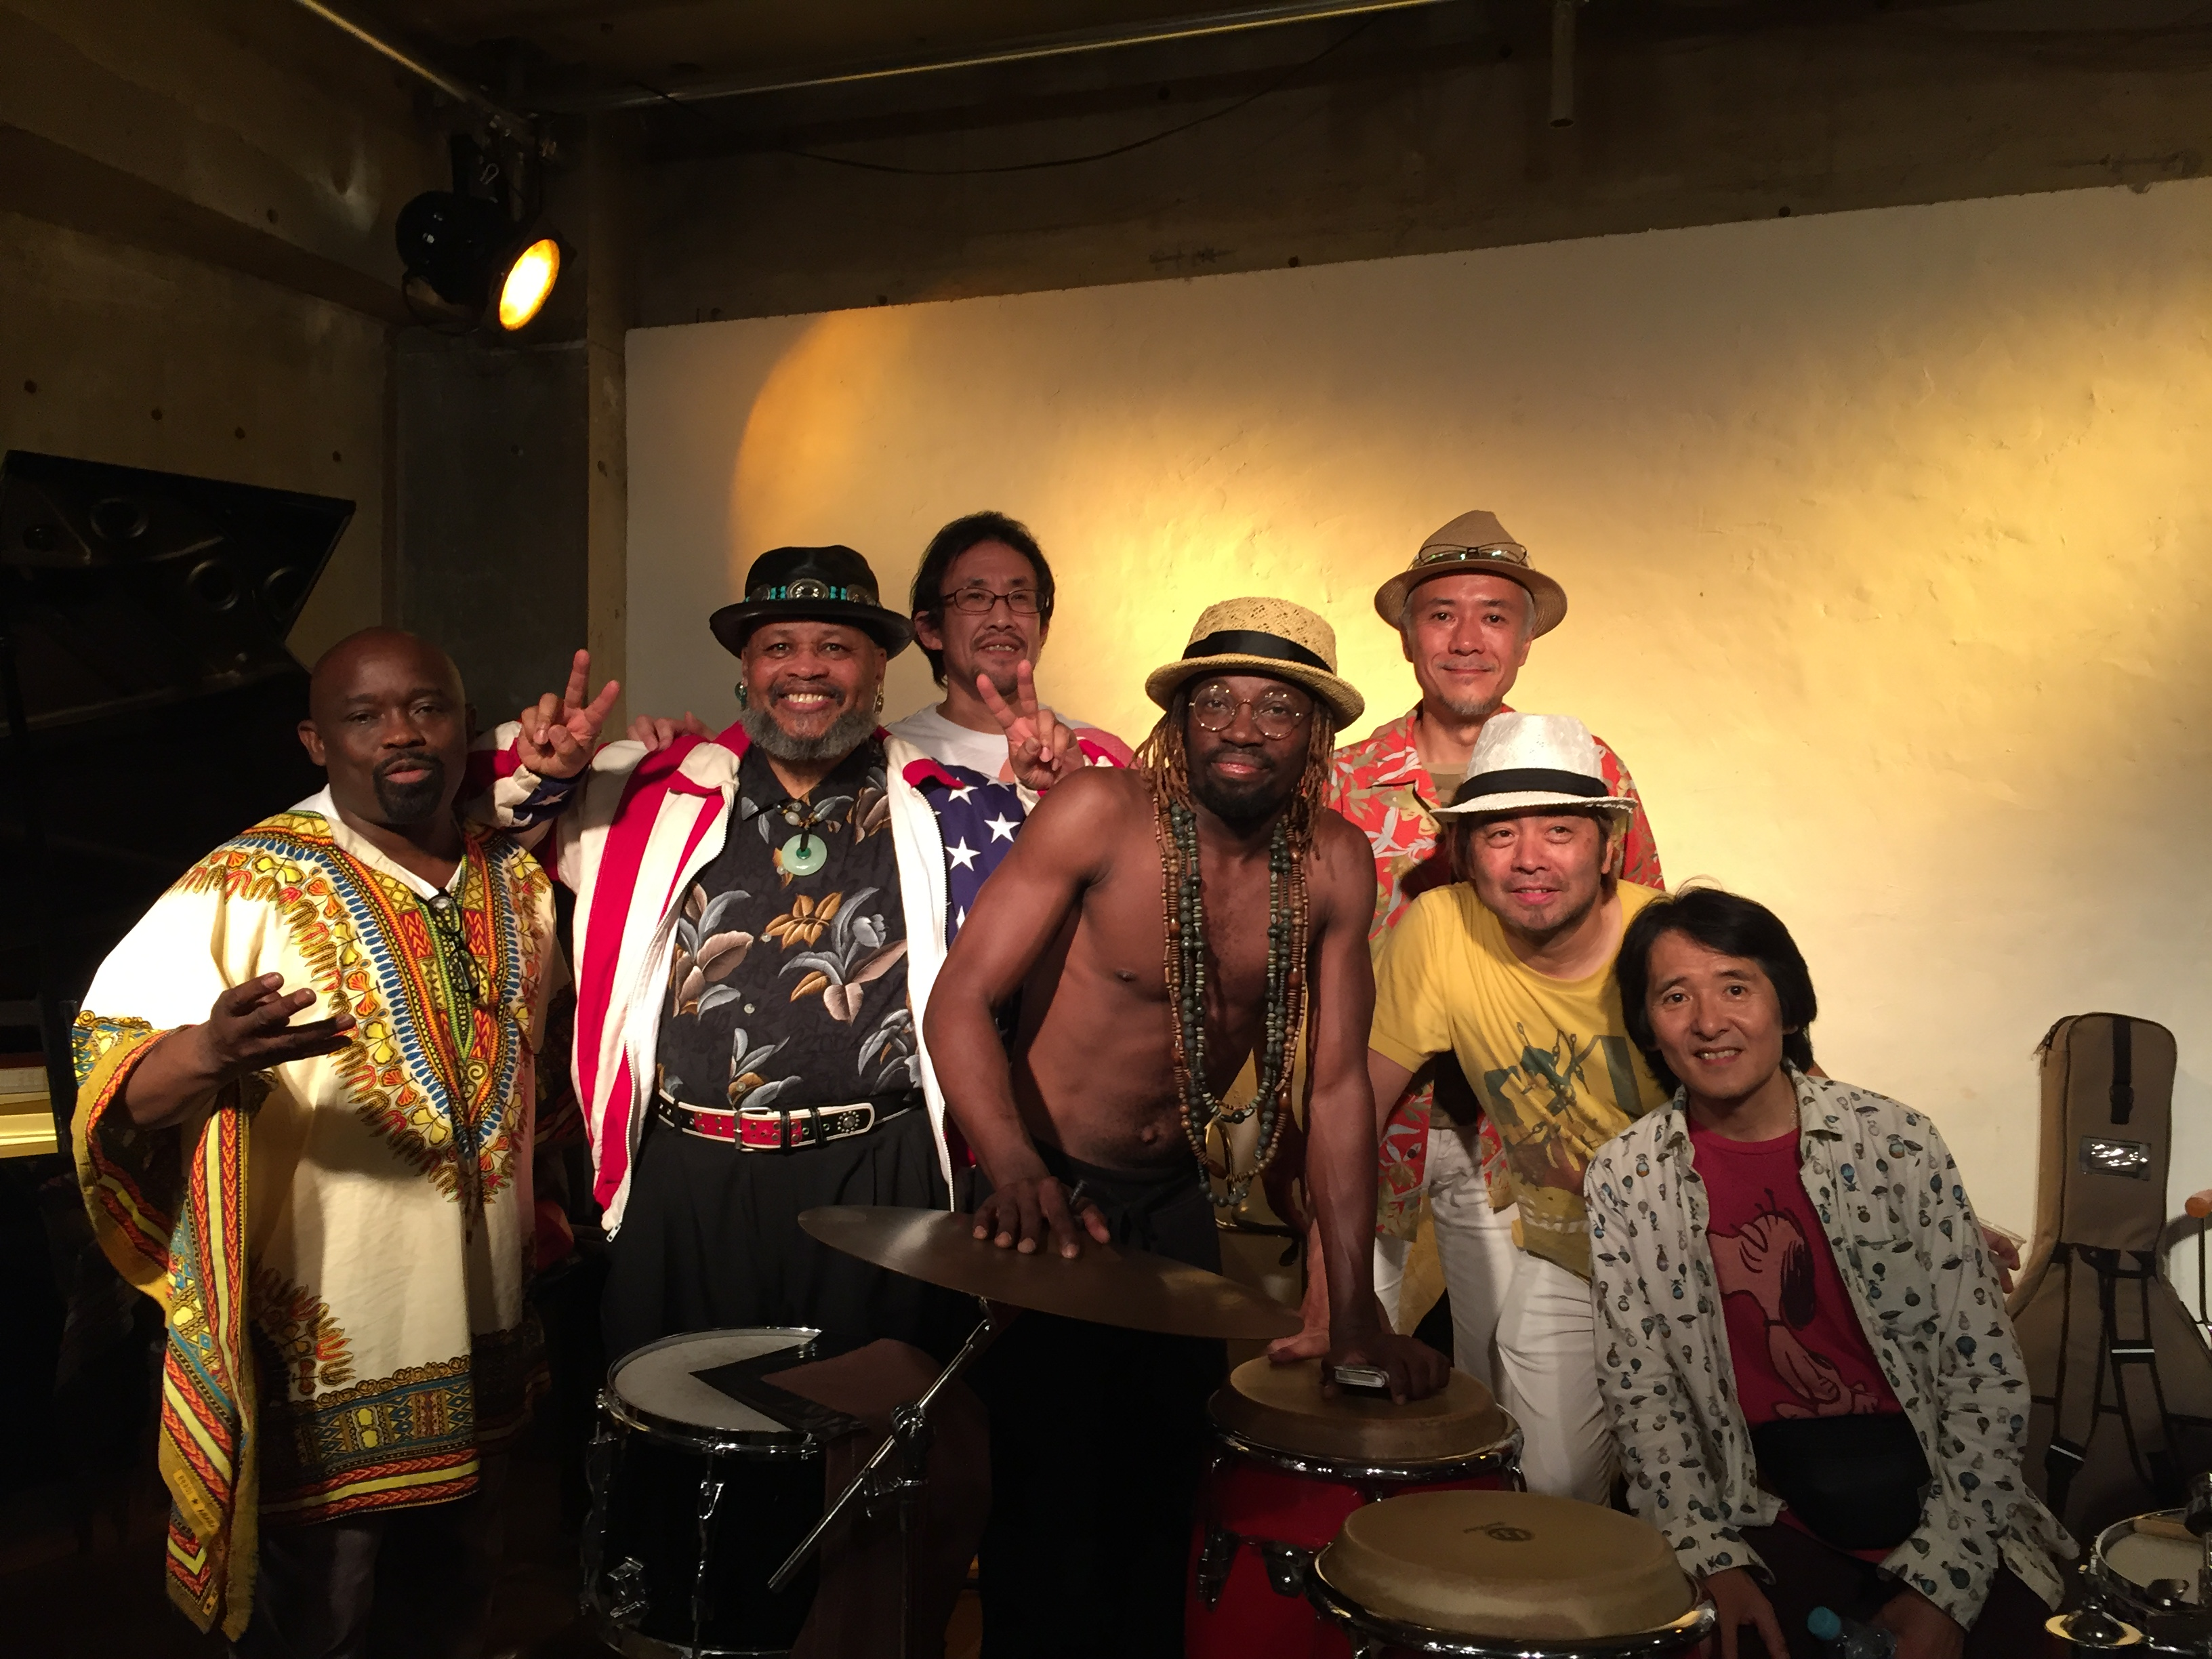 Song for Kumamoto★World Music Tour 2016 vol.3 ★Otokura, Shimokitazawa